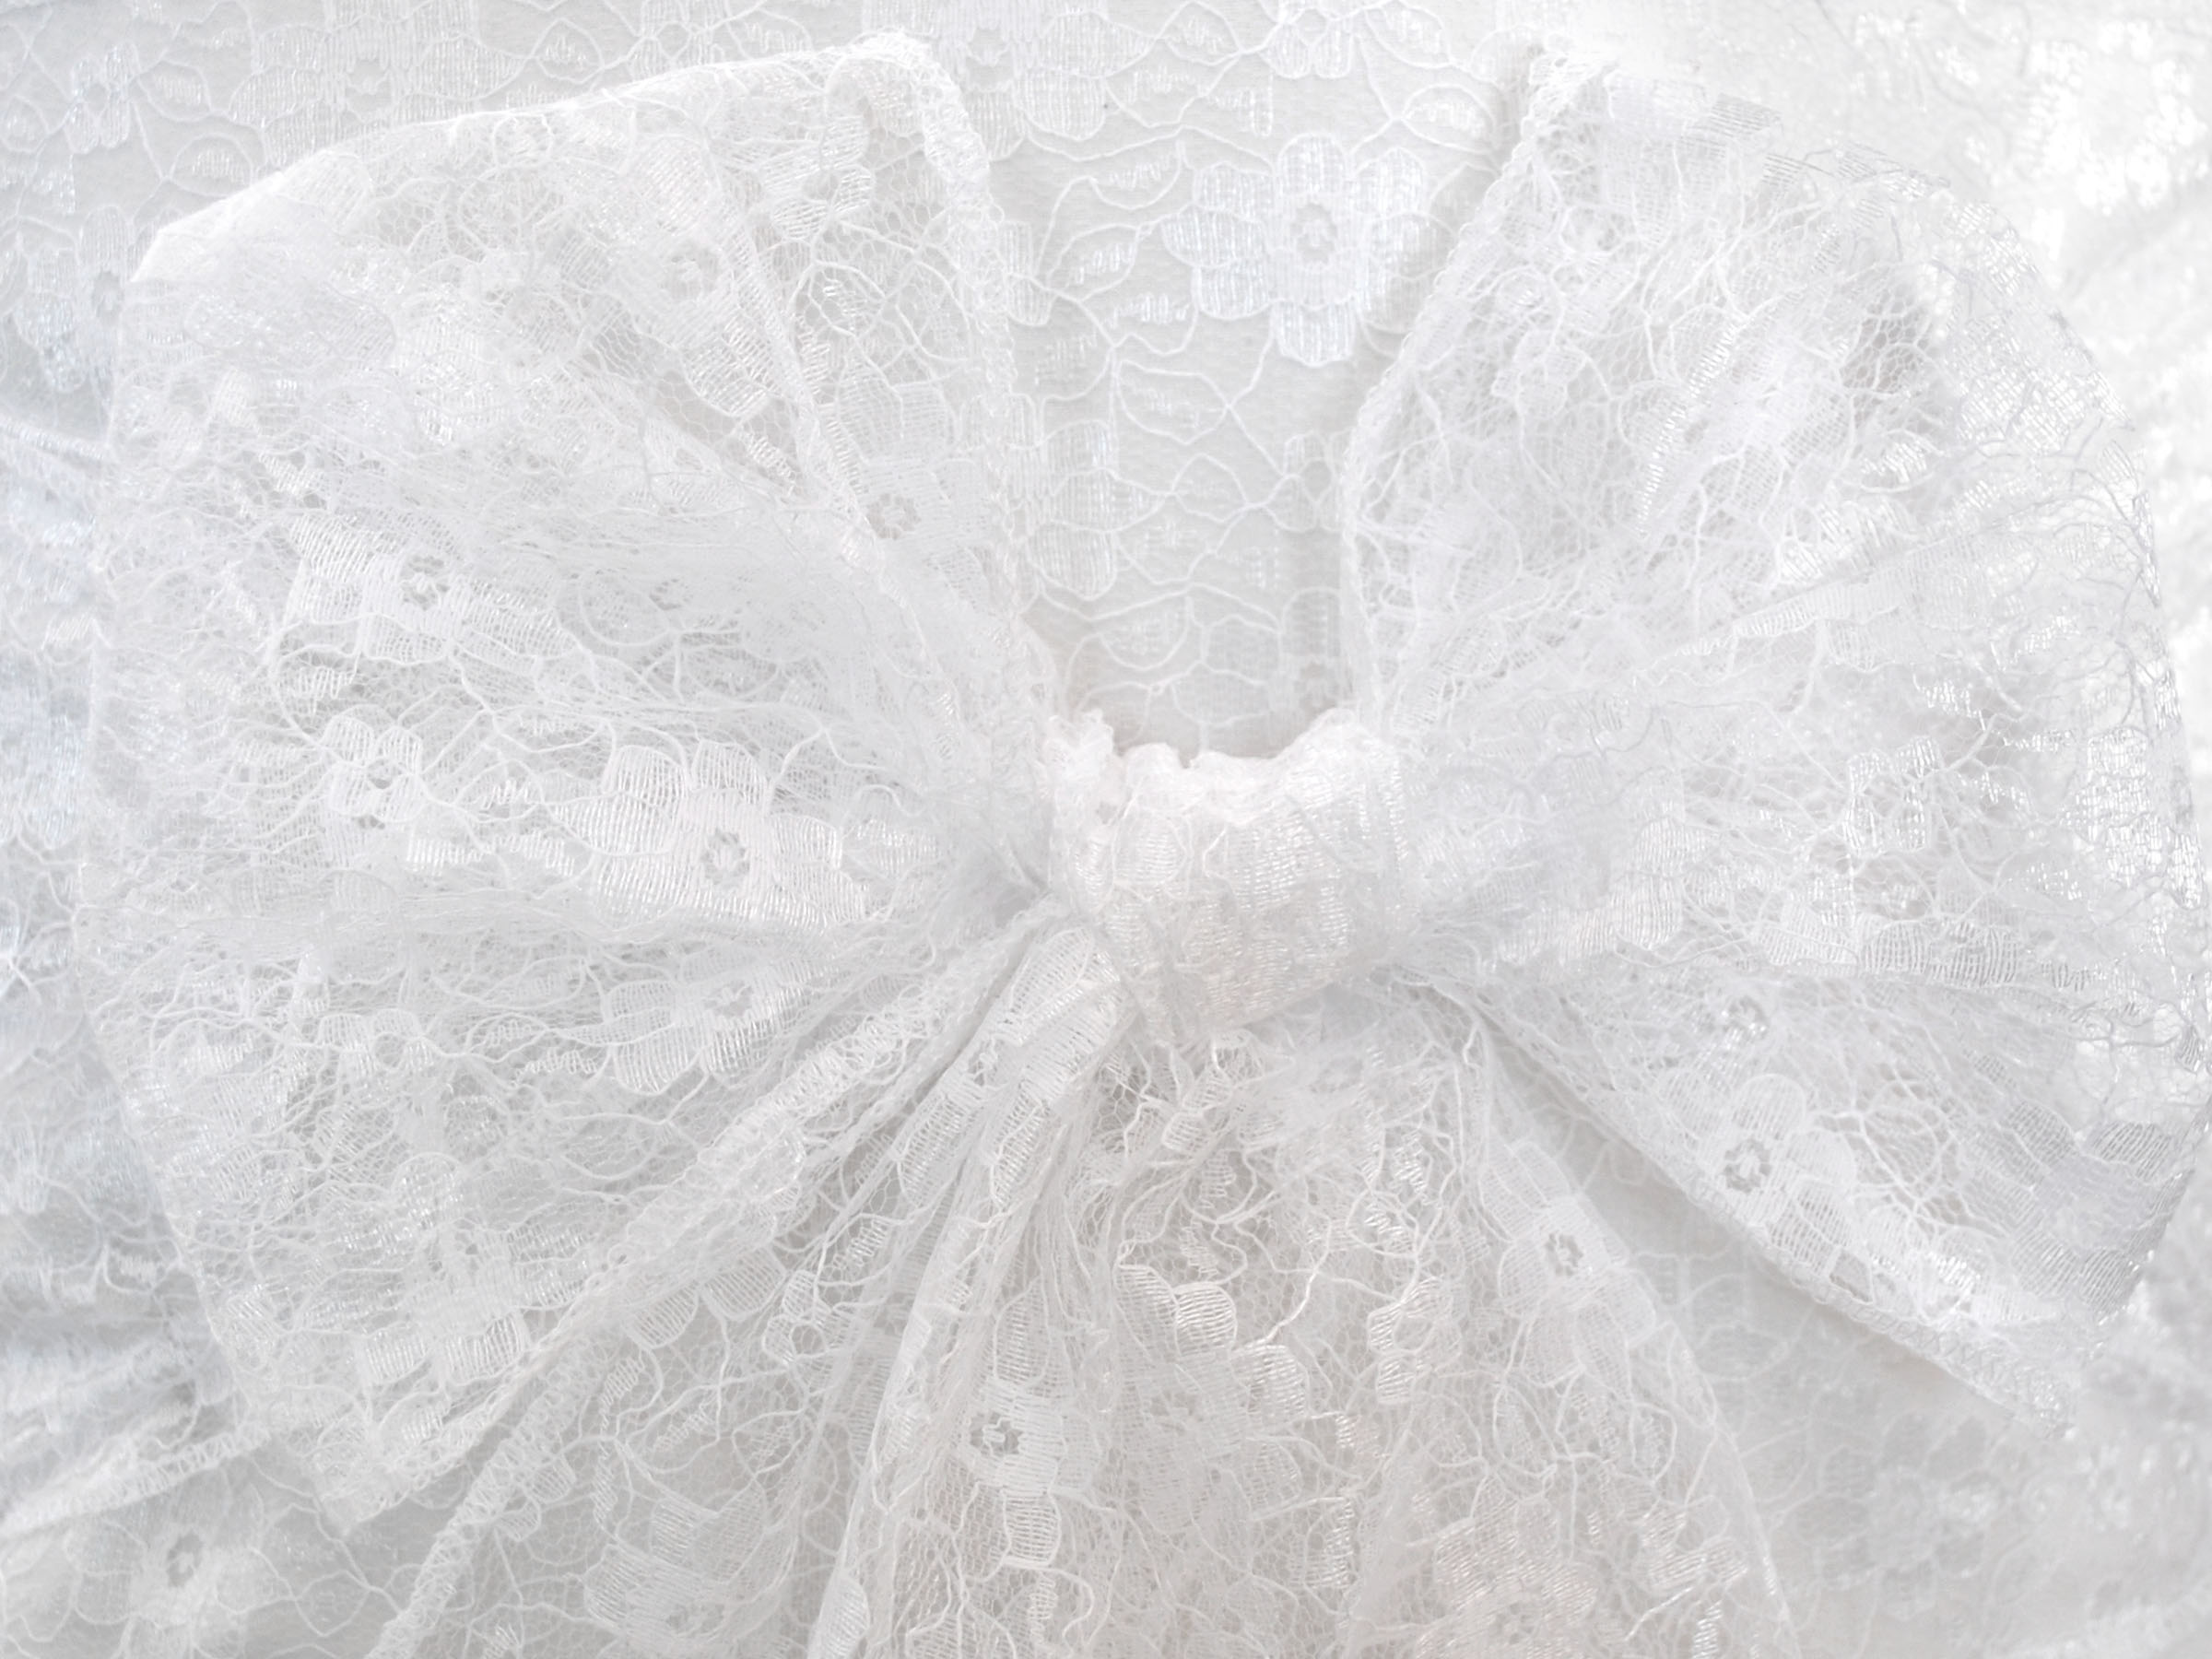 white lace tumblr backgrounds-#4